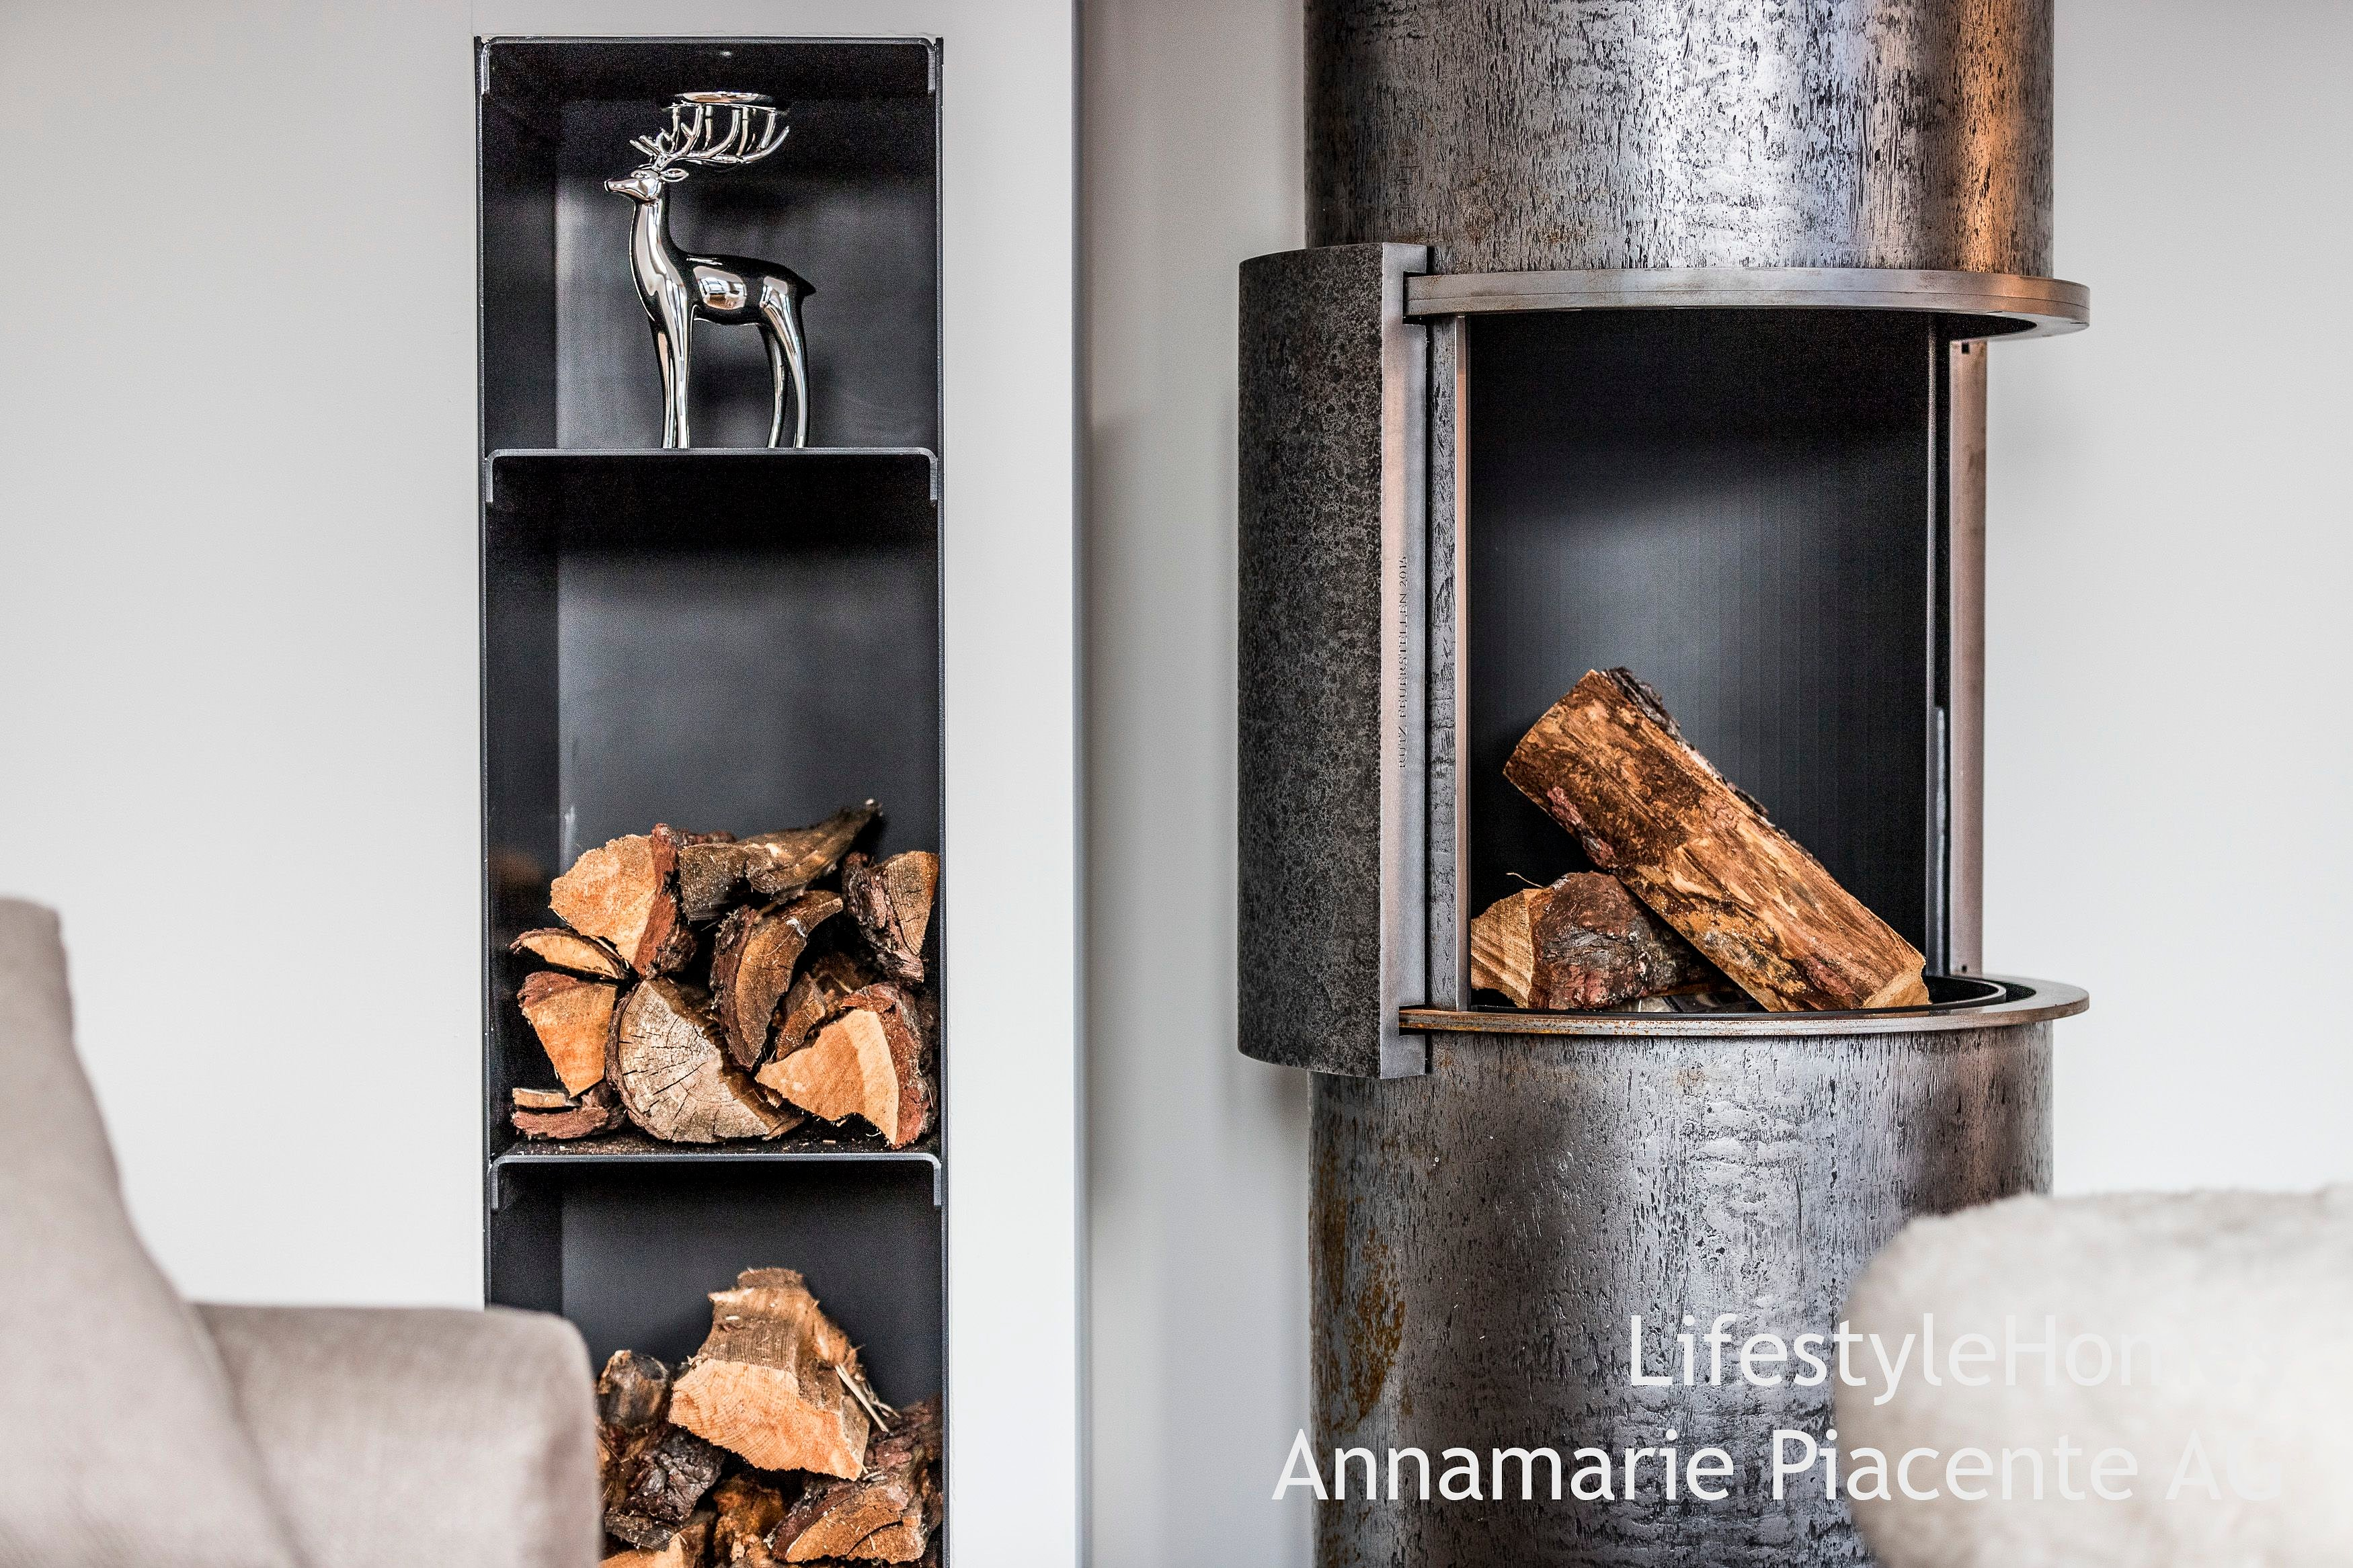 LifestyleHomes Annamarie Piacente AG